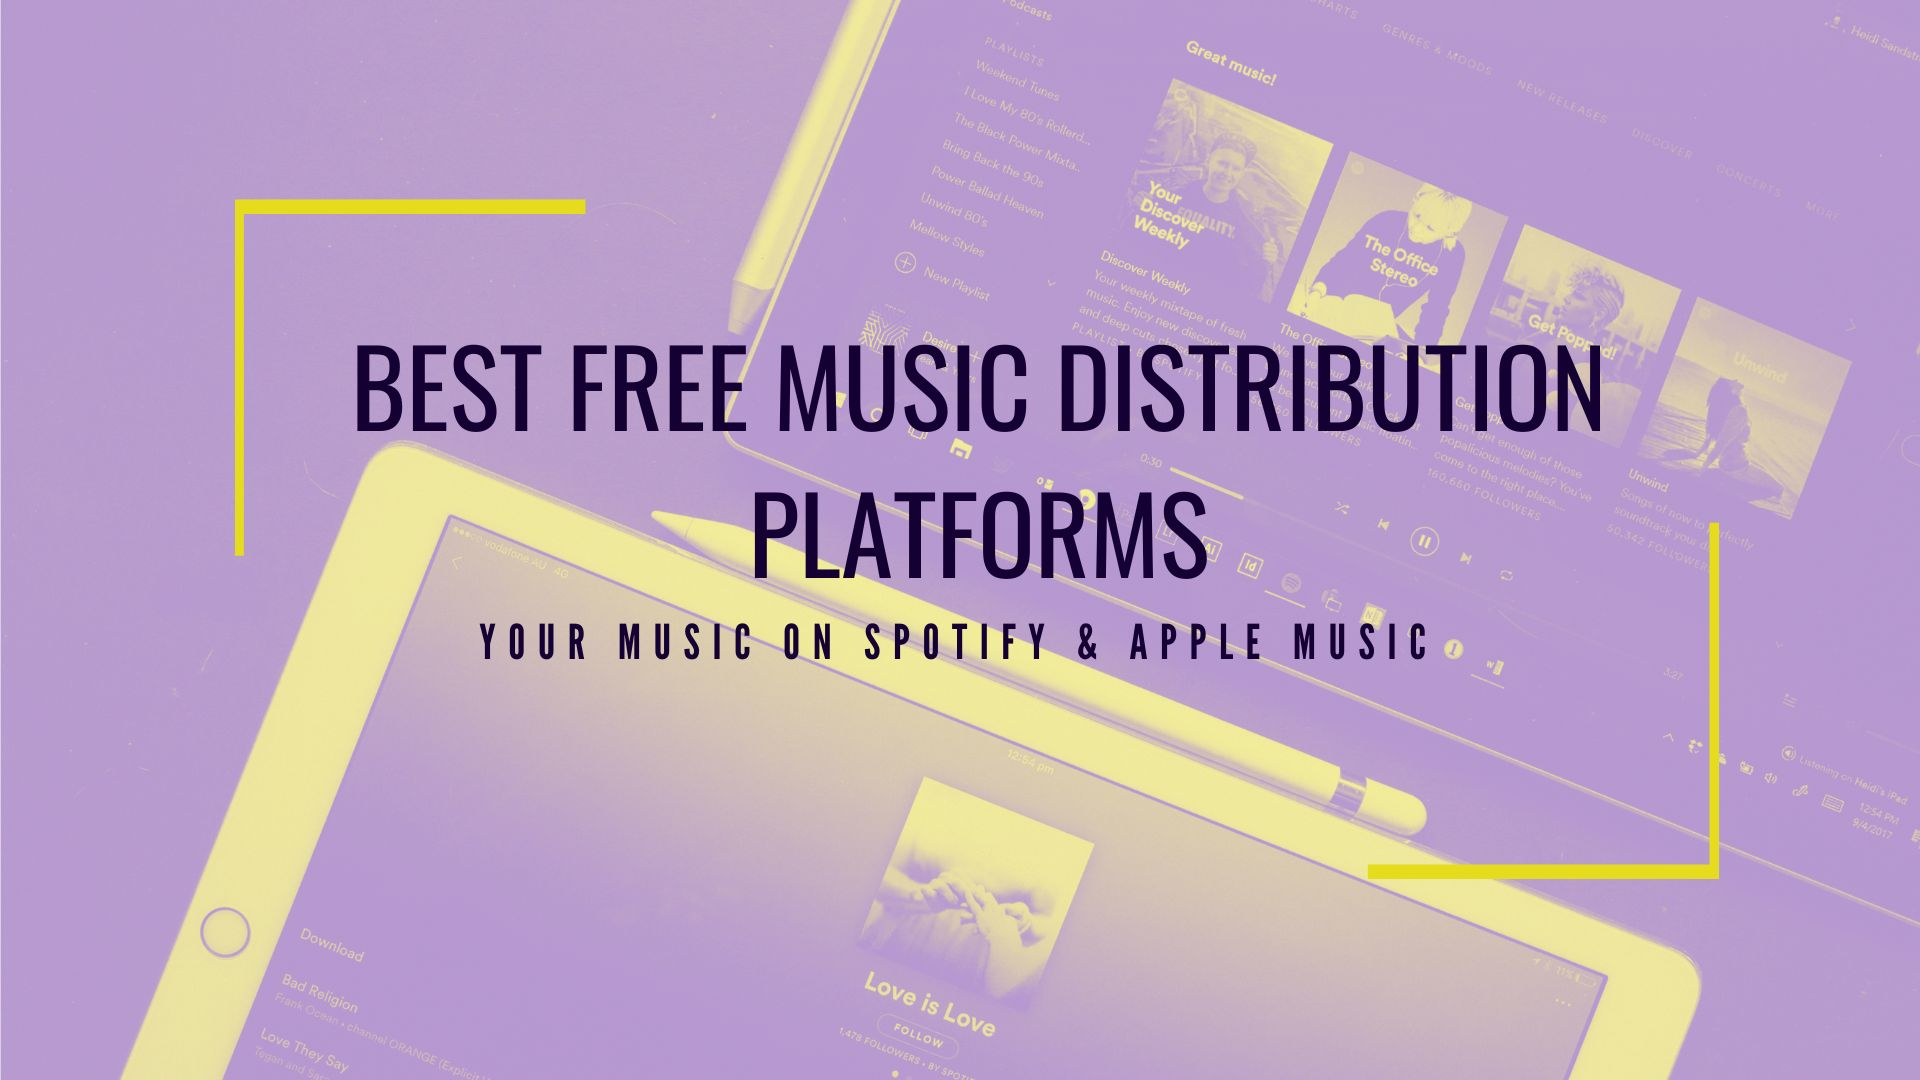 Free Music Distribution, Aggregators: The review for Routenote, Distrokid, Soundrop, Bandcamp